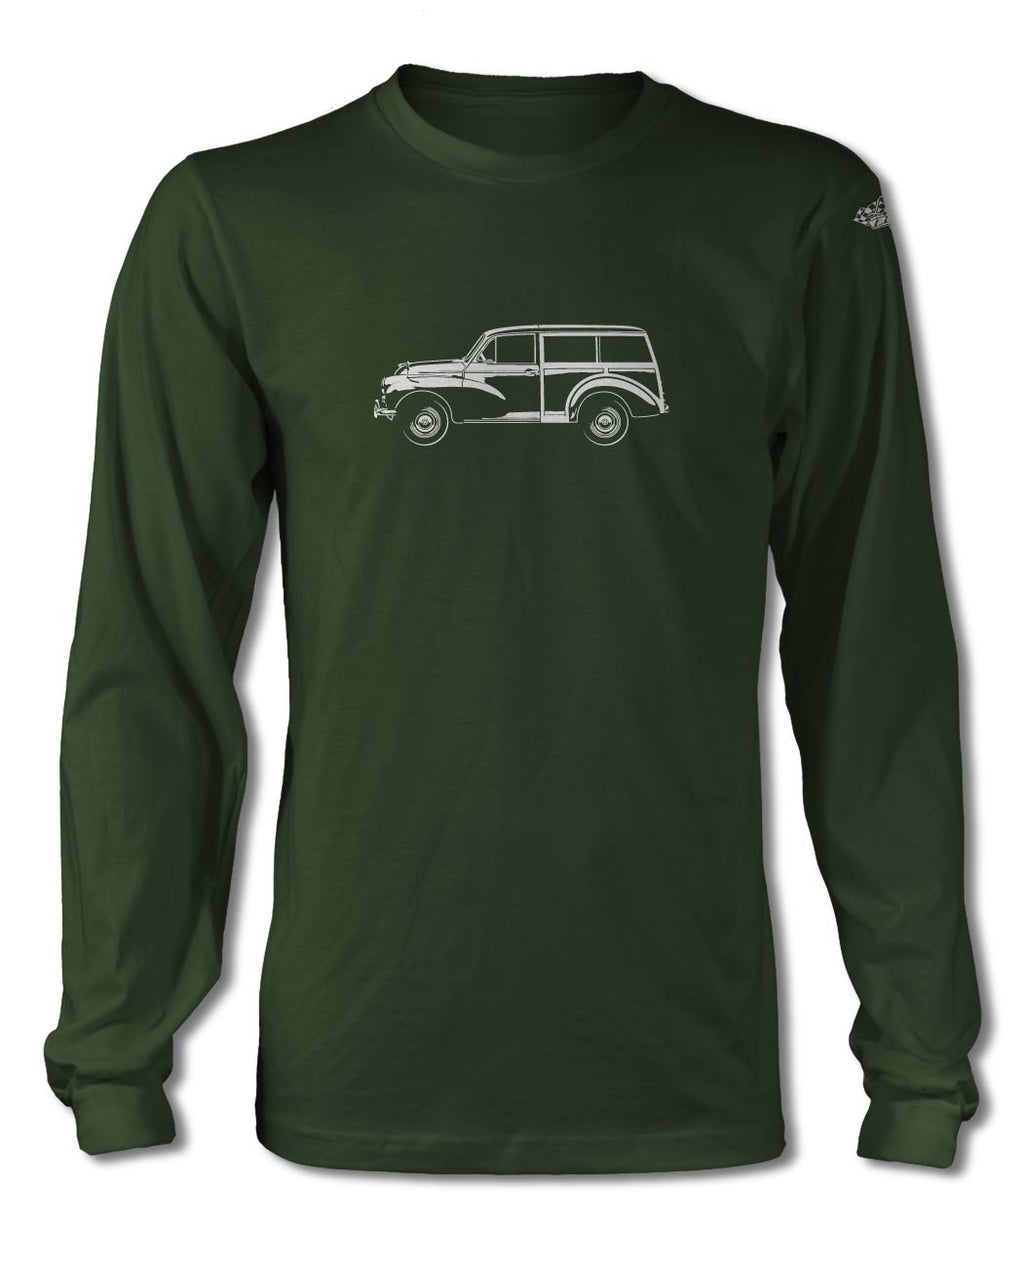 Morris Minor Traveller Woody T-Shirt - Long Sleeves - Side View